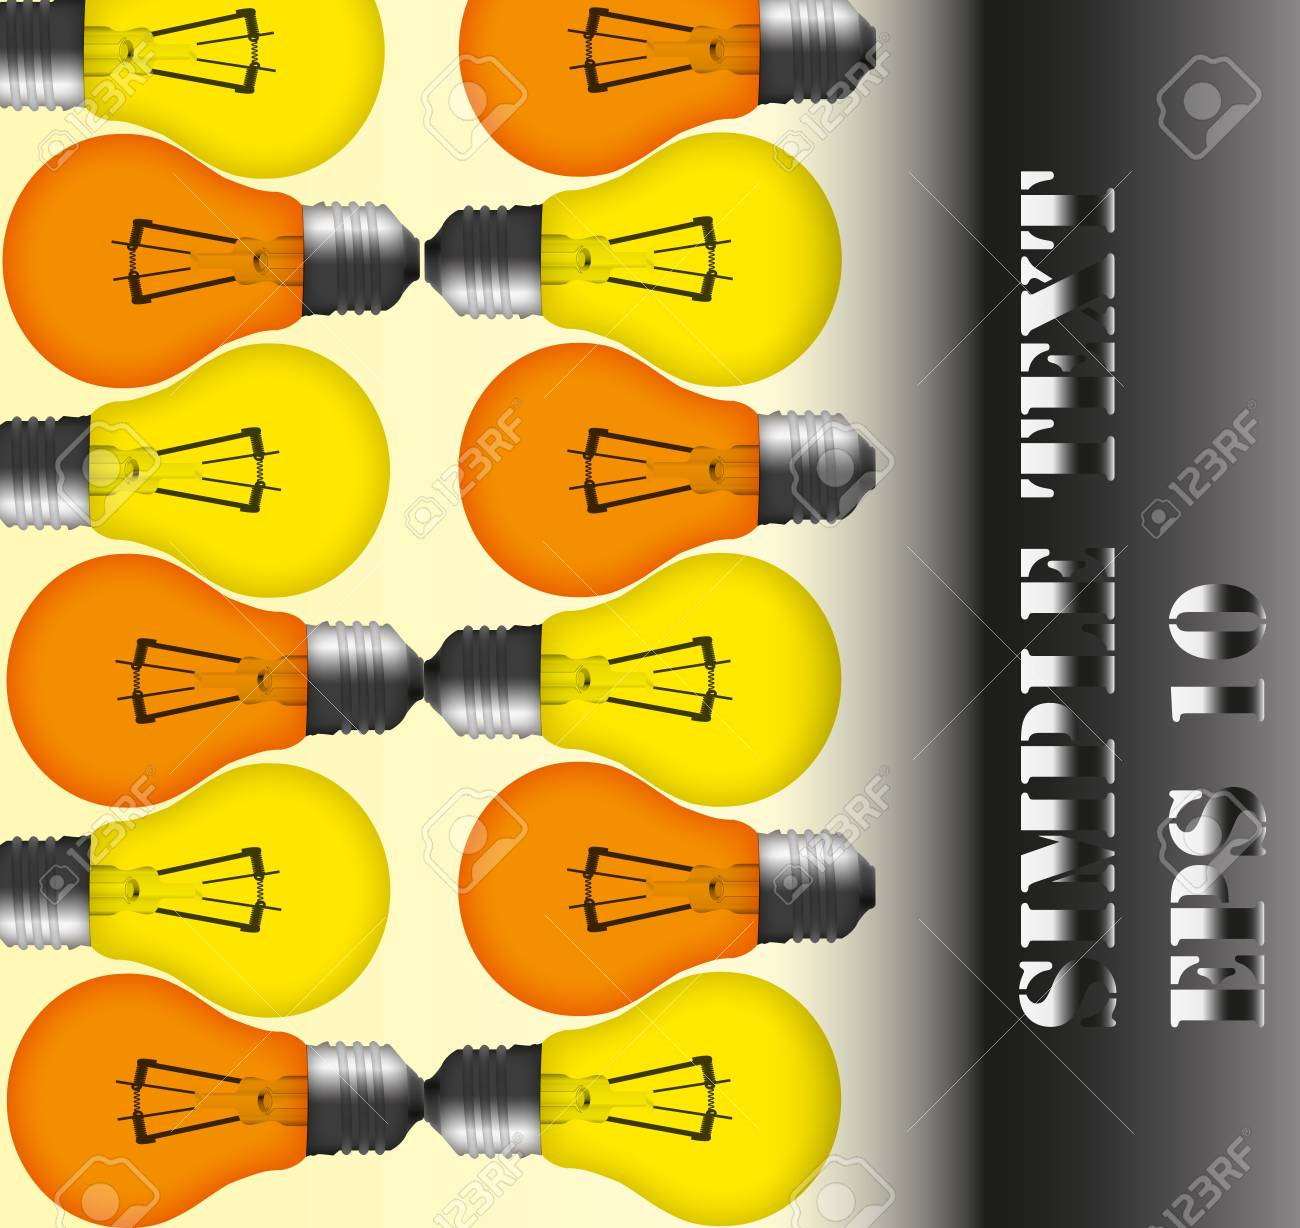 The abstract lamp background wallpaper. Stock Photo - 11570643